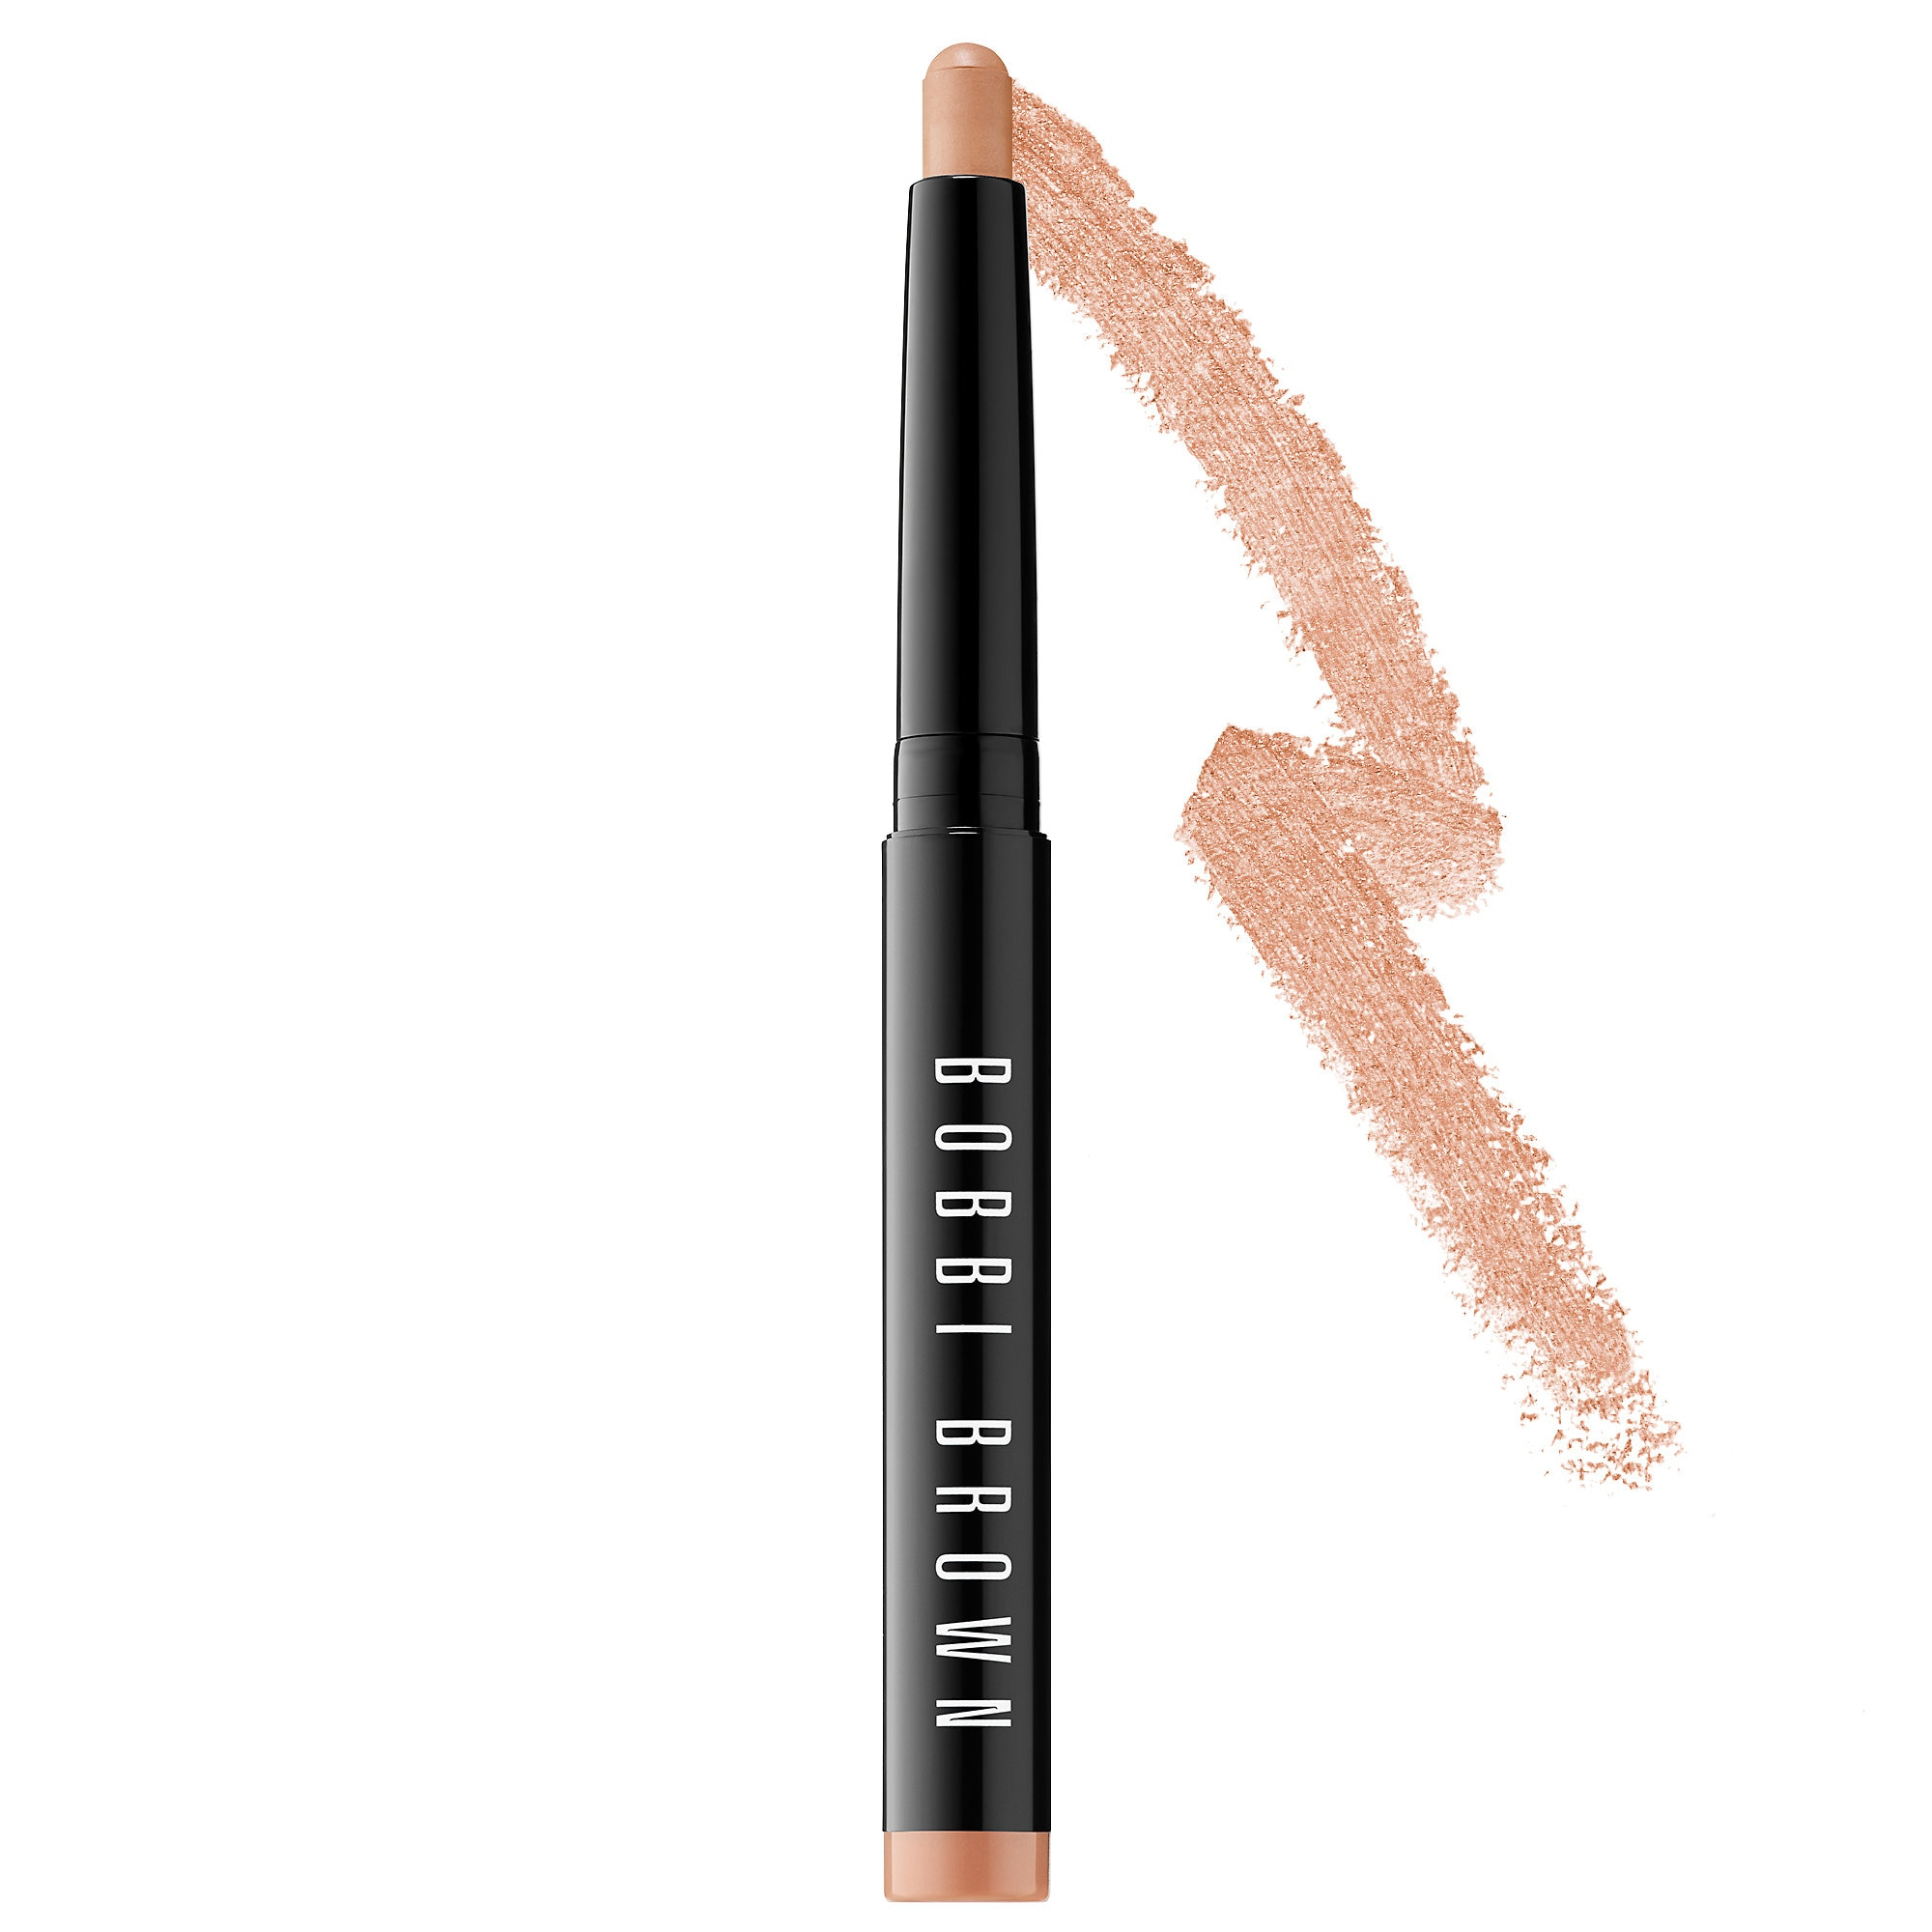 Bobbi Brown - Long-Wear Cream Shadow Stick